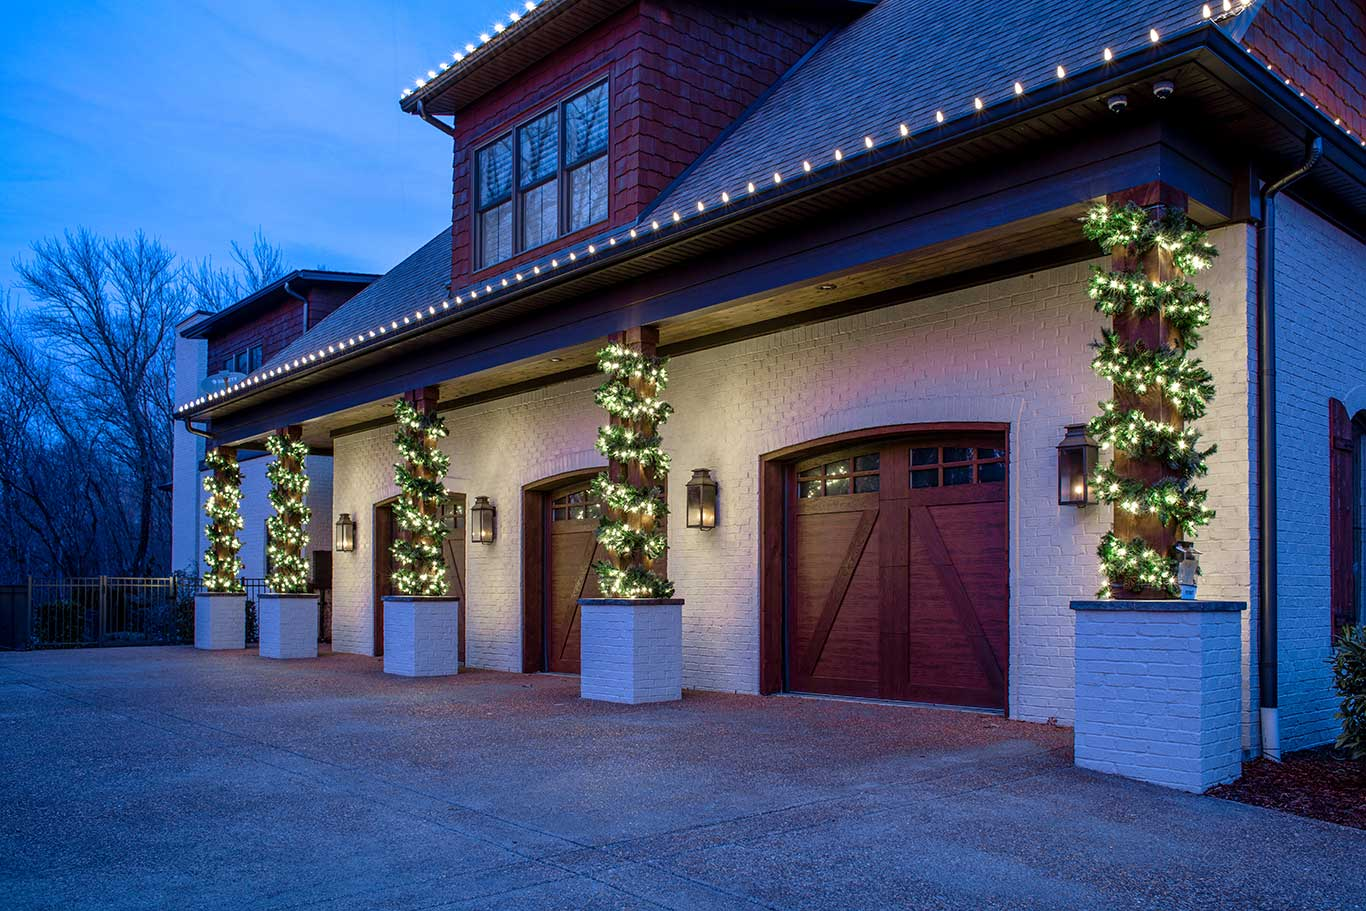 wood columns wrapped in lit garland